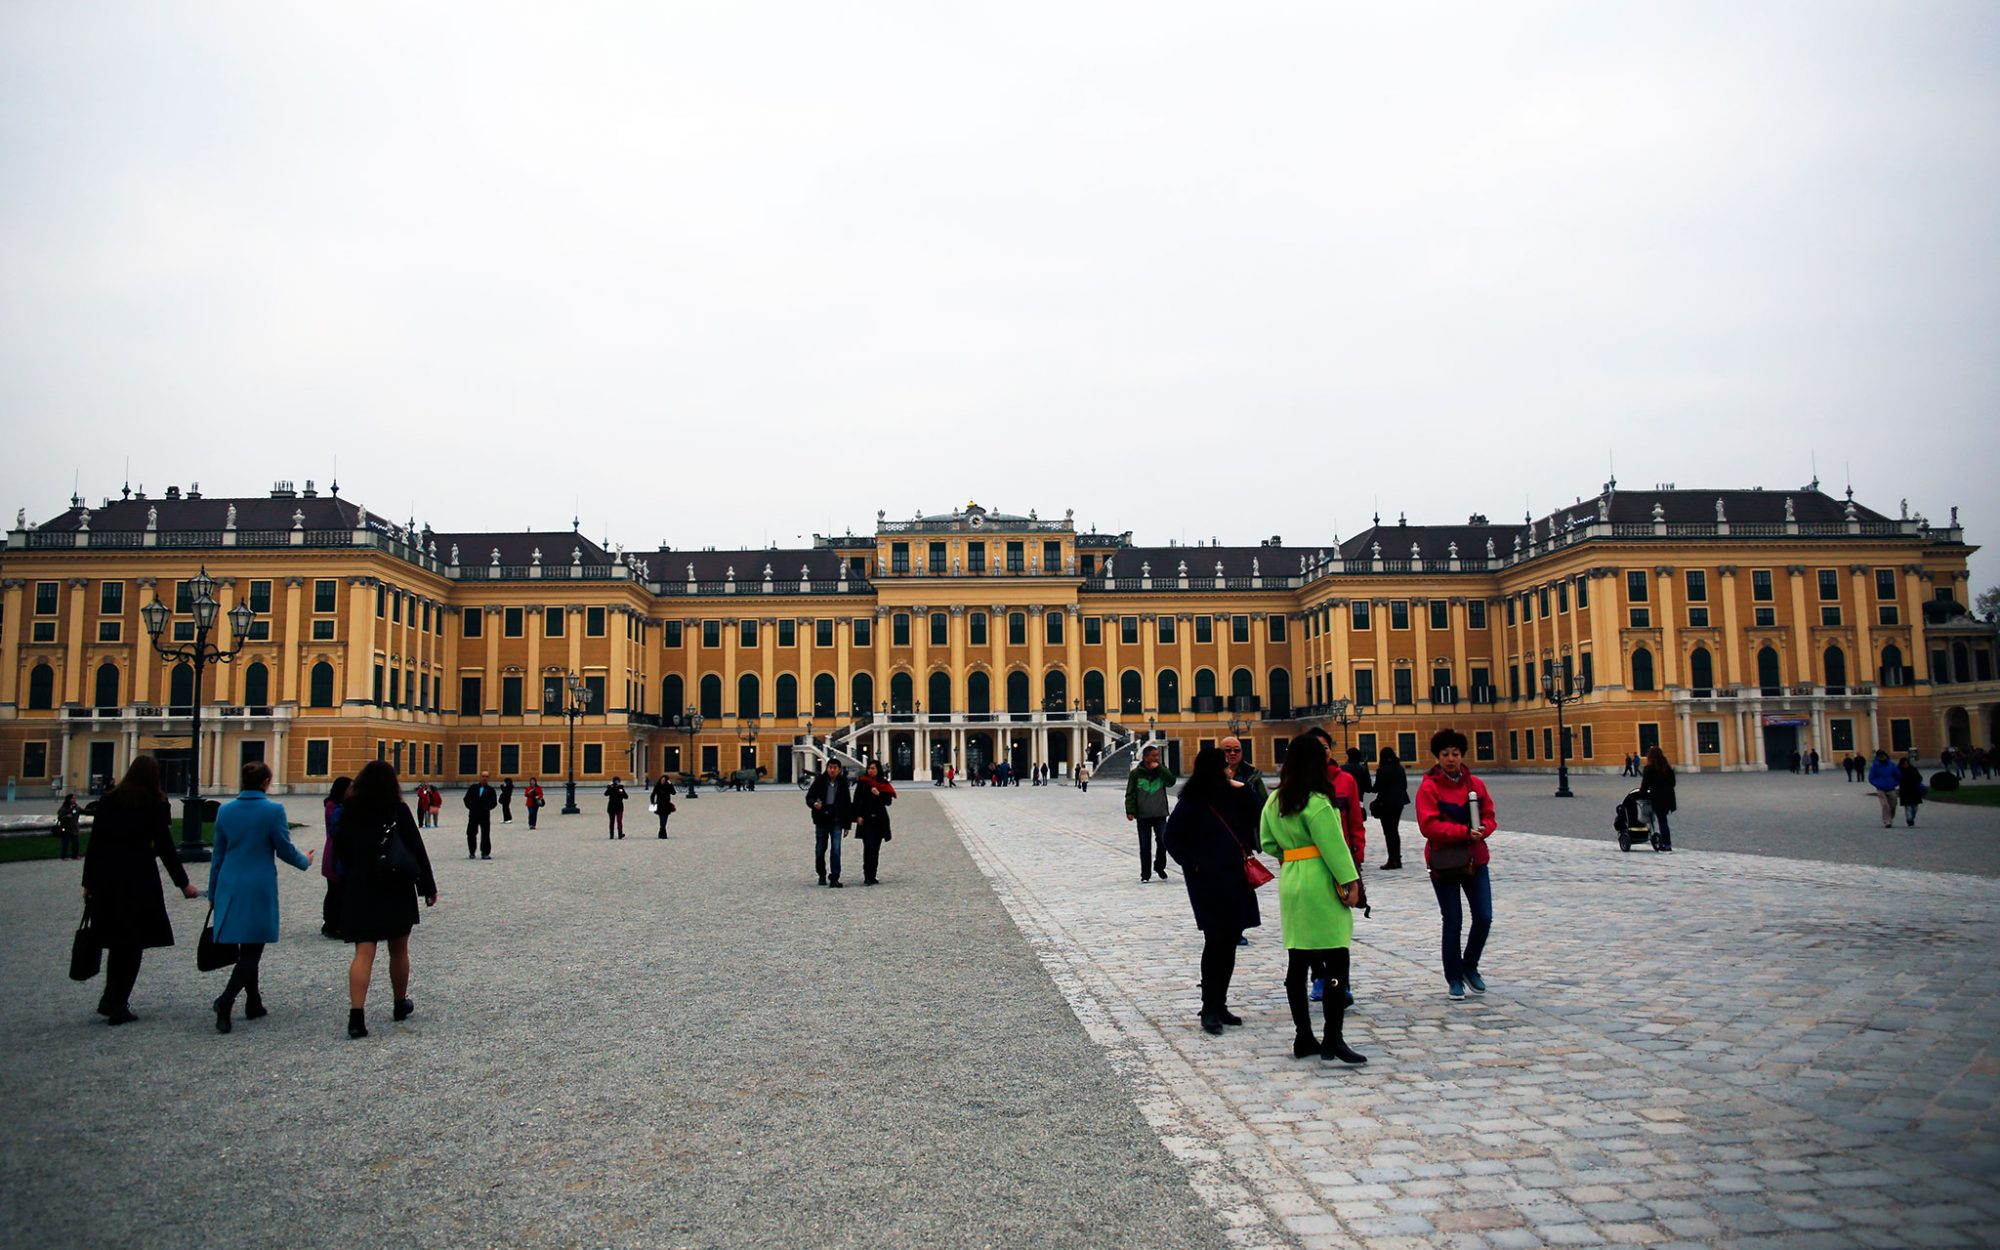 World's Most-Visited Castles: No. 8 Schönbrunn Palace, Vienna